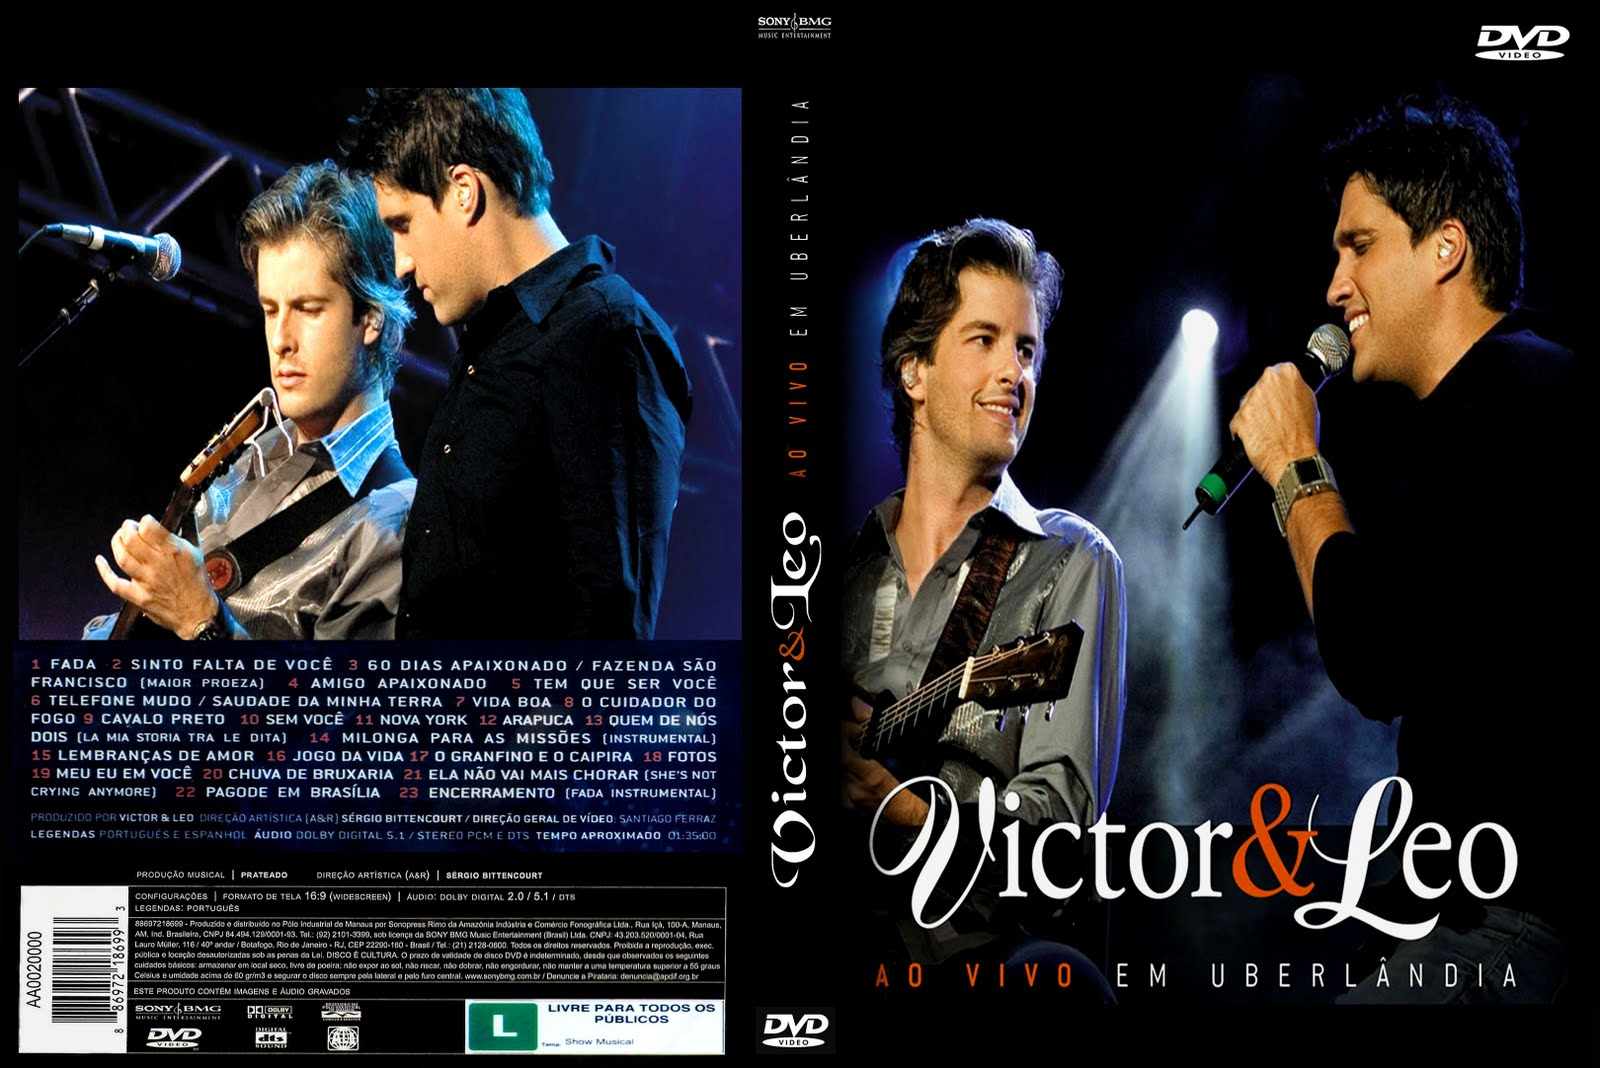 audio do dvd victor e leo em uberlandia